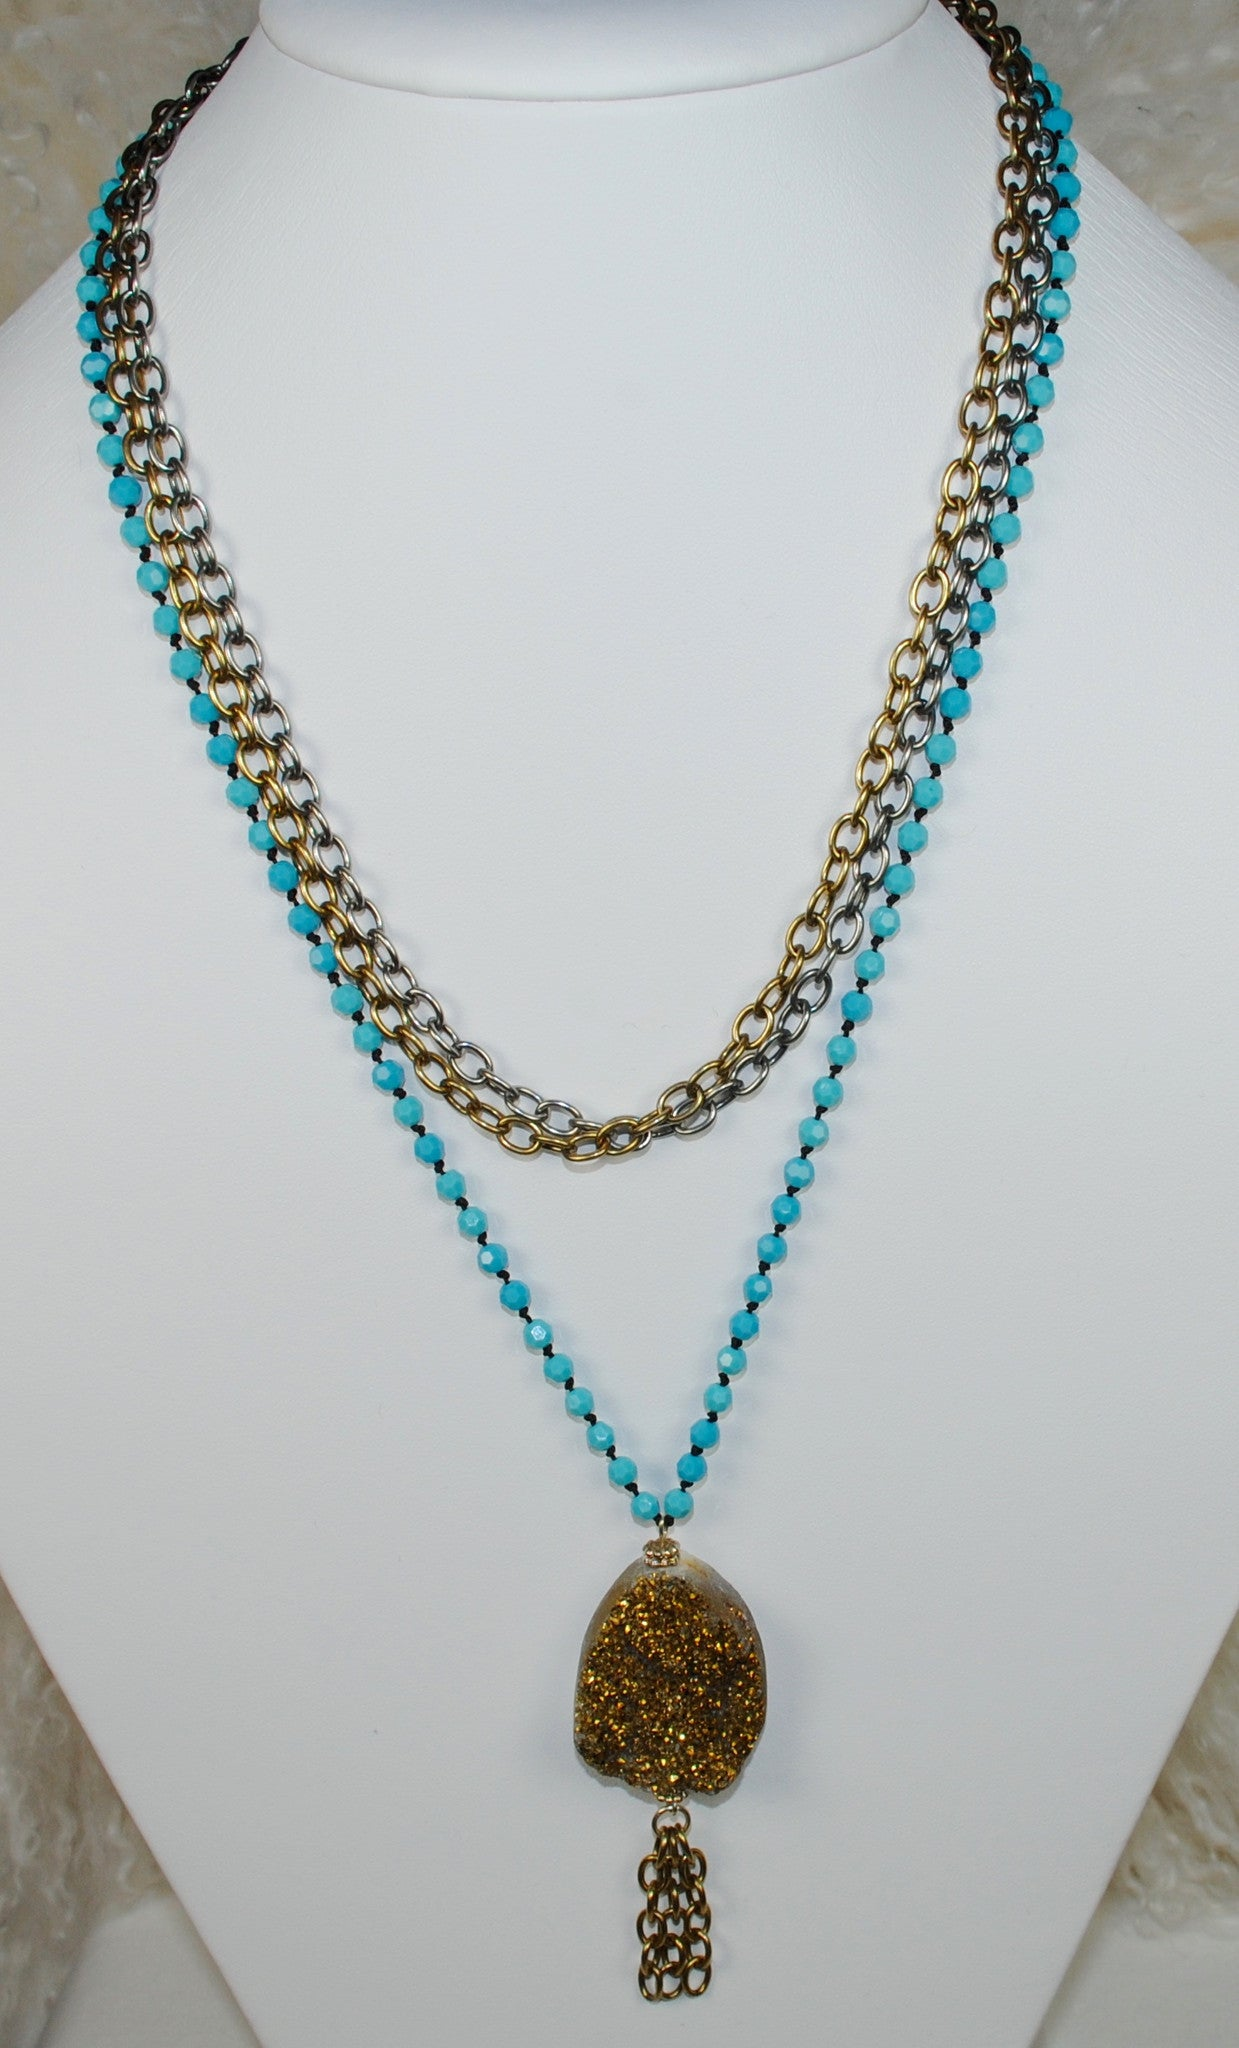 Turquoise, Silver and Gold Pendant Necklace Set